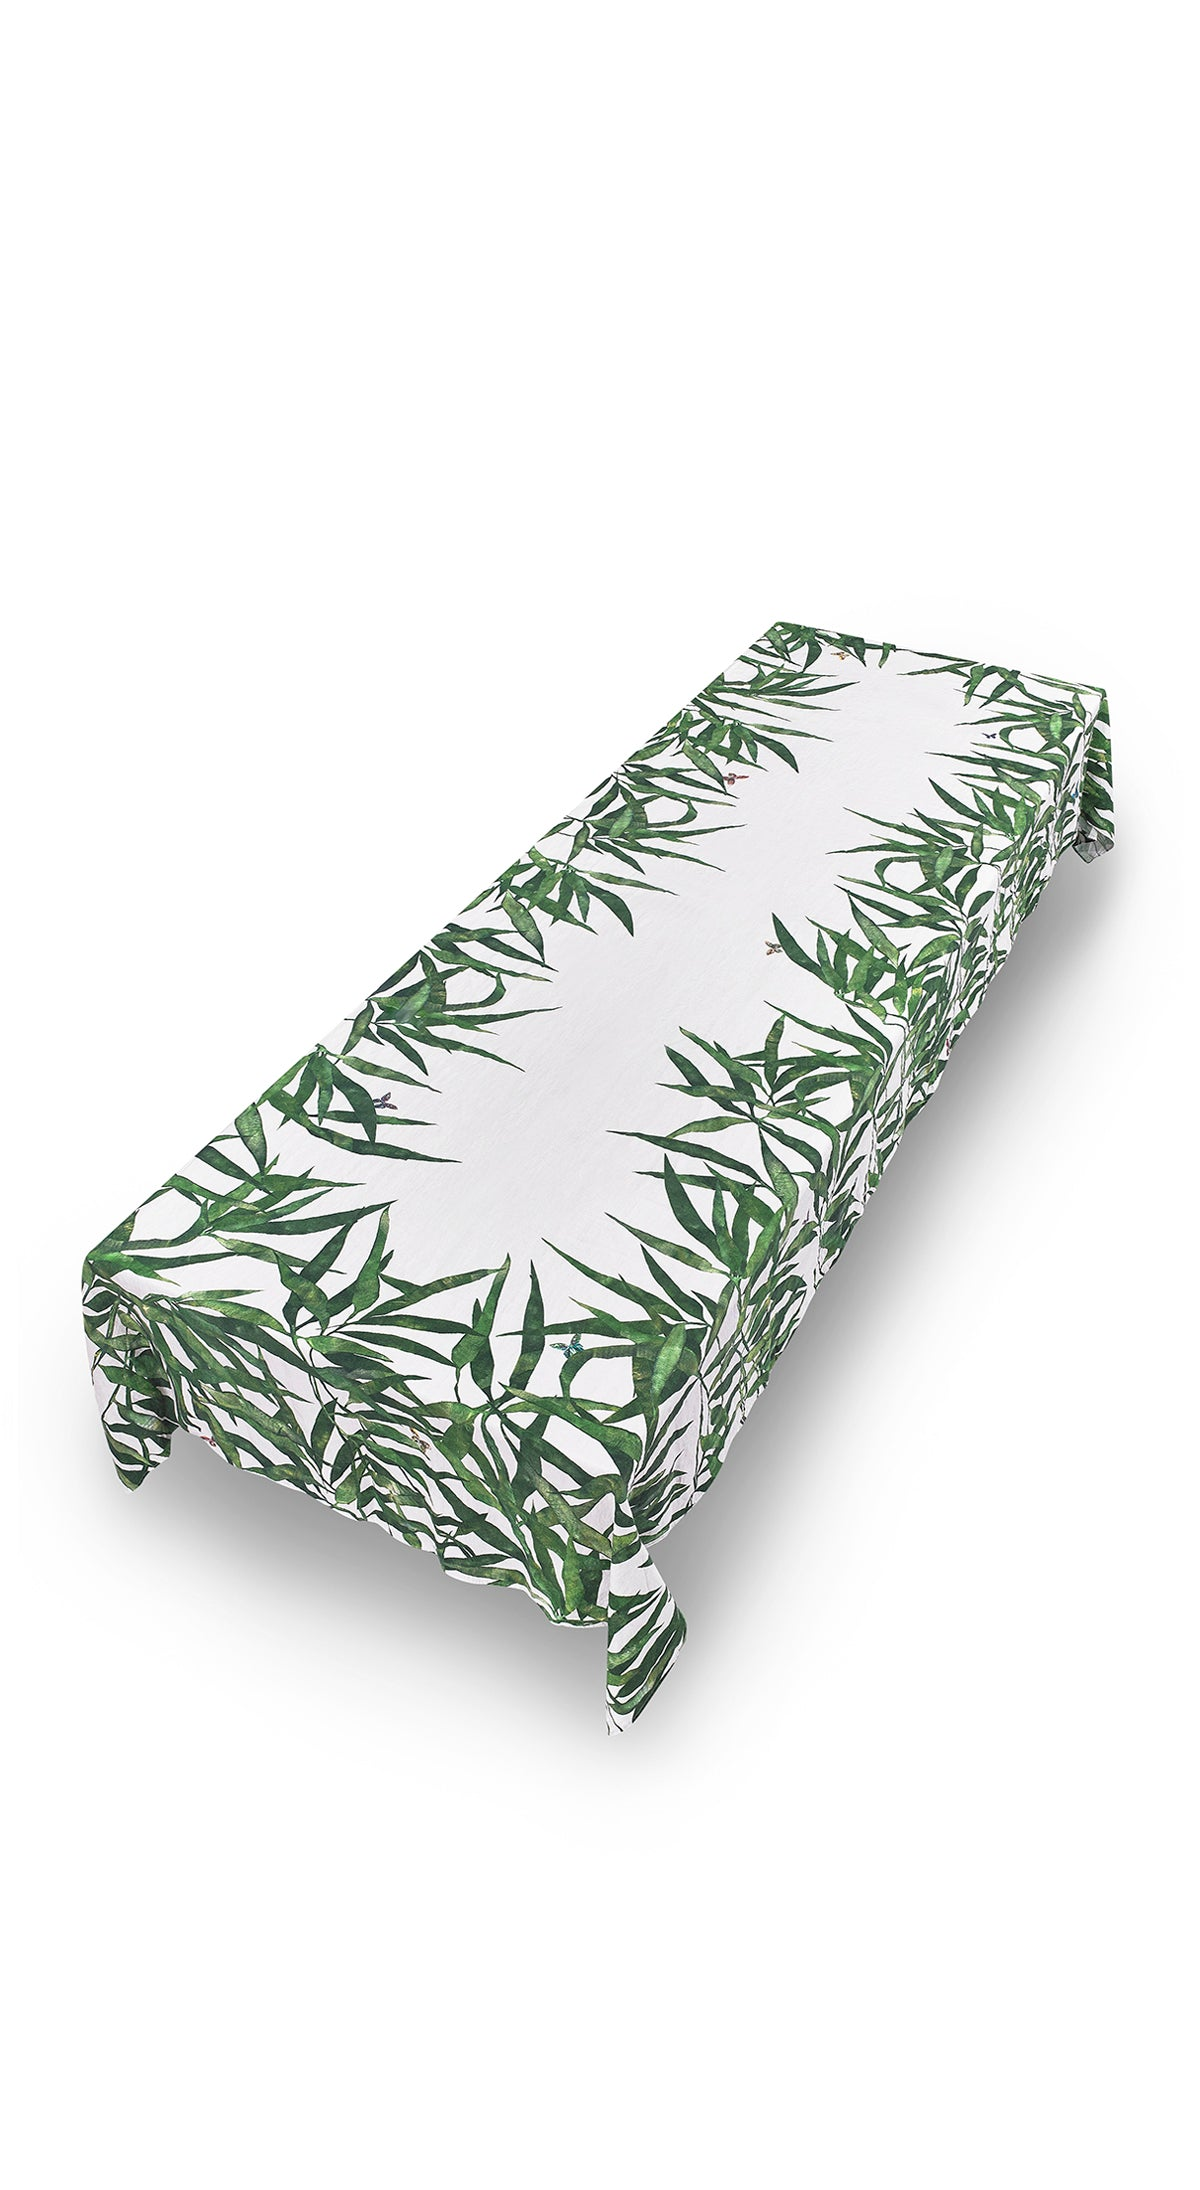 Les Palmiers Linen Tablecloth in Green